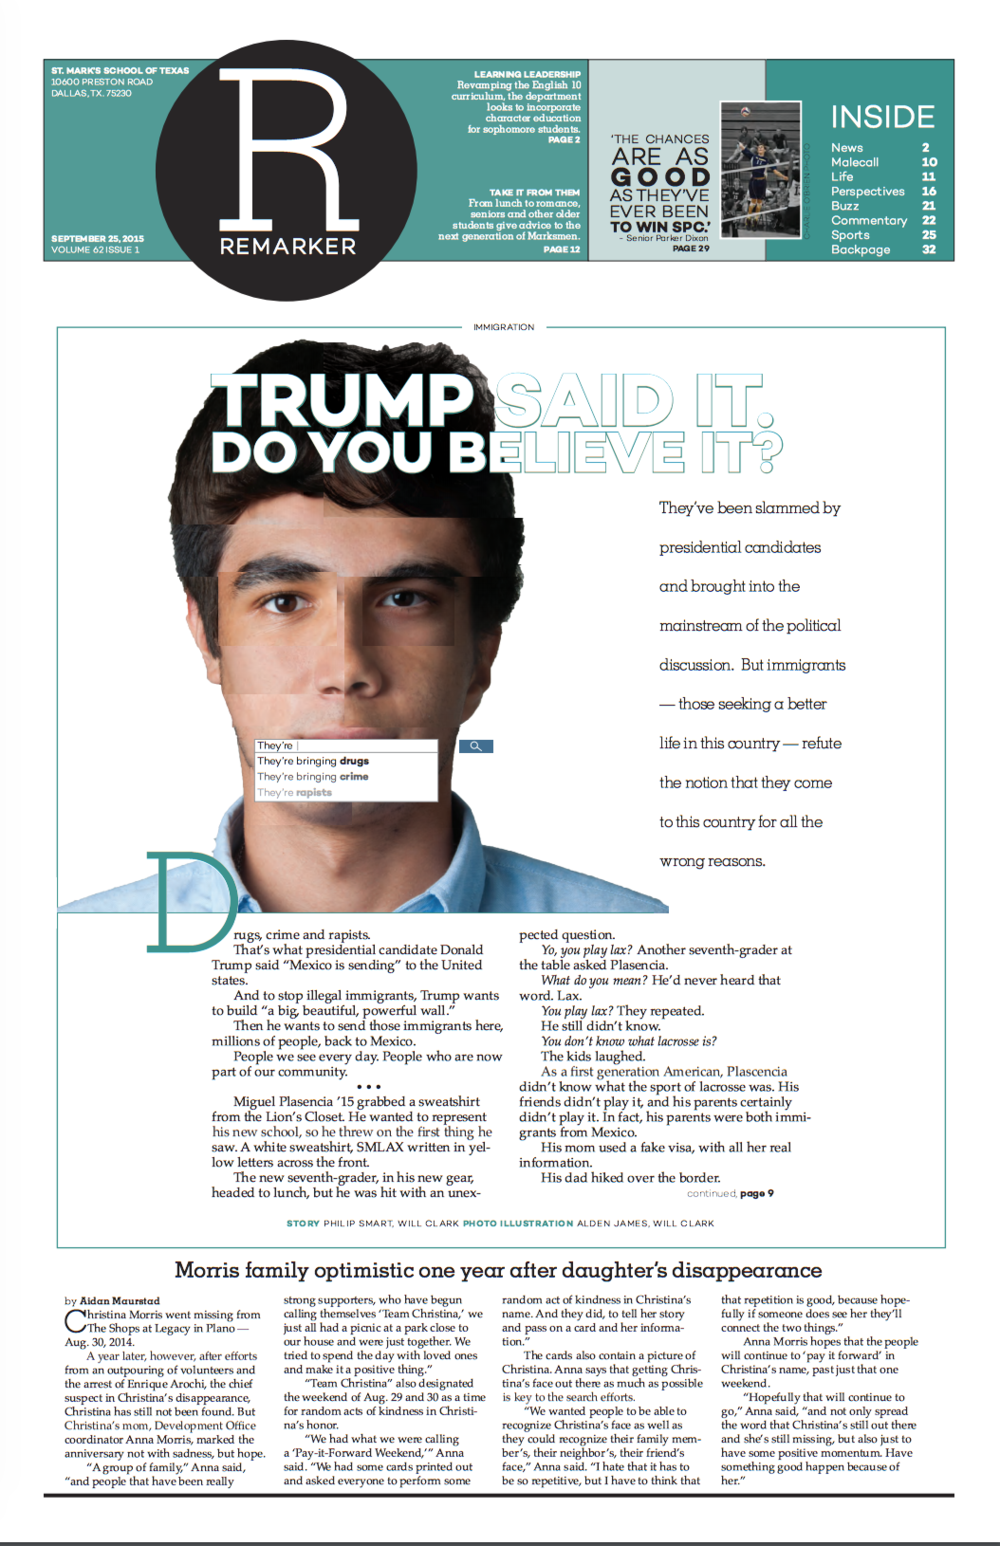 For this cover, I combined the photos of several Latino students in our community to create a photo collage of the alleged people who Trump had recently slandered.I then placed a search bar over his mouth, demonstrating the hateful speech that immigrants face.